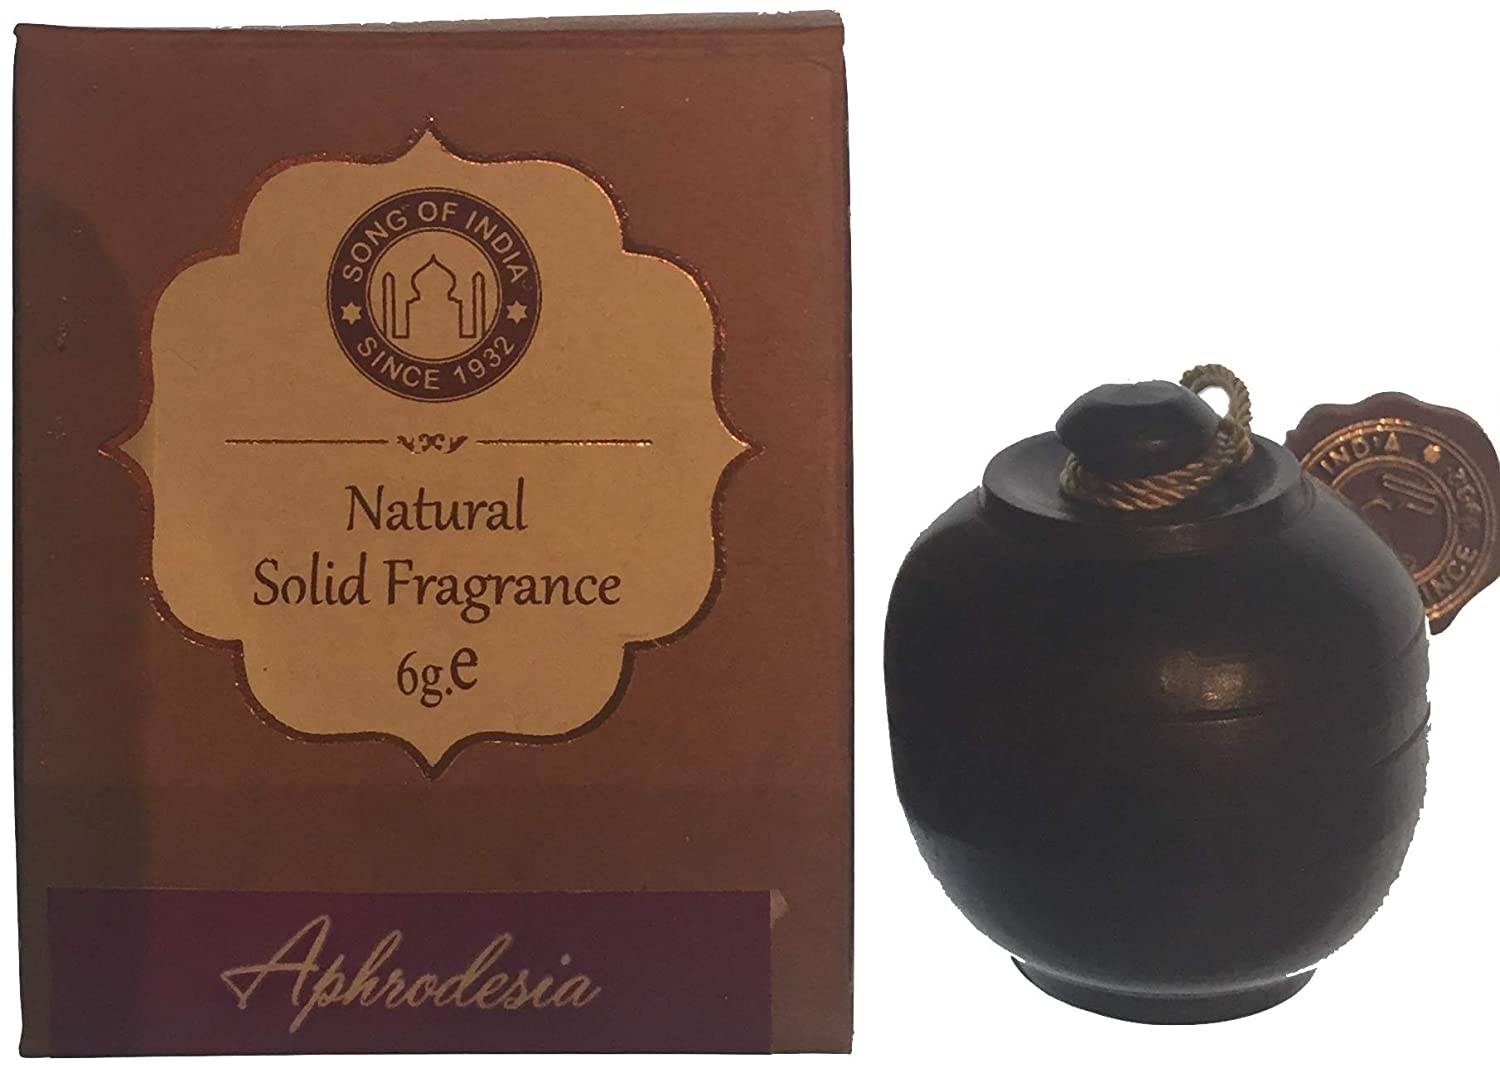 Song of India Solid Perfume in Hand-Carved Rosewood Jar with Screw-on Top (Aphrodesia)